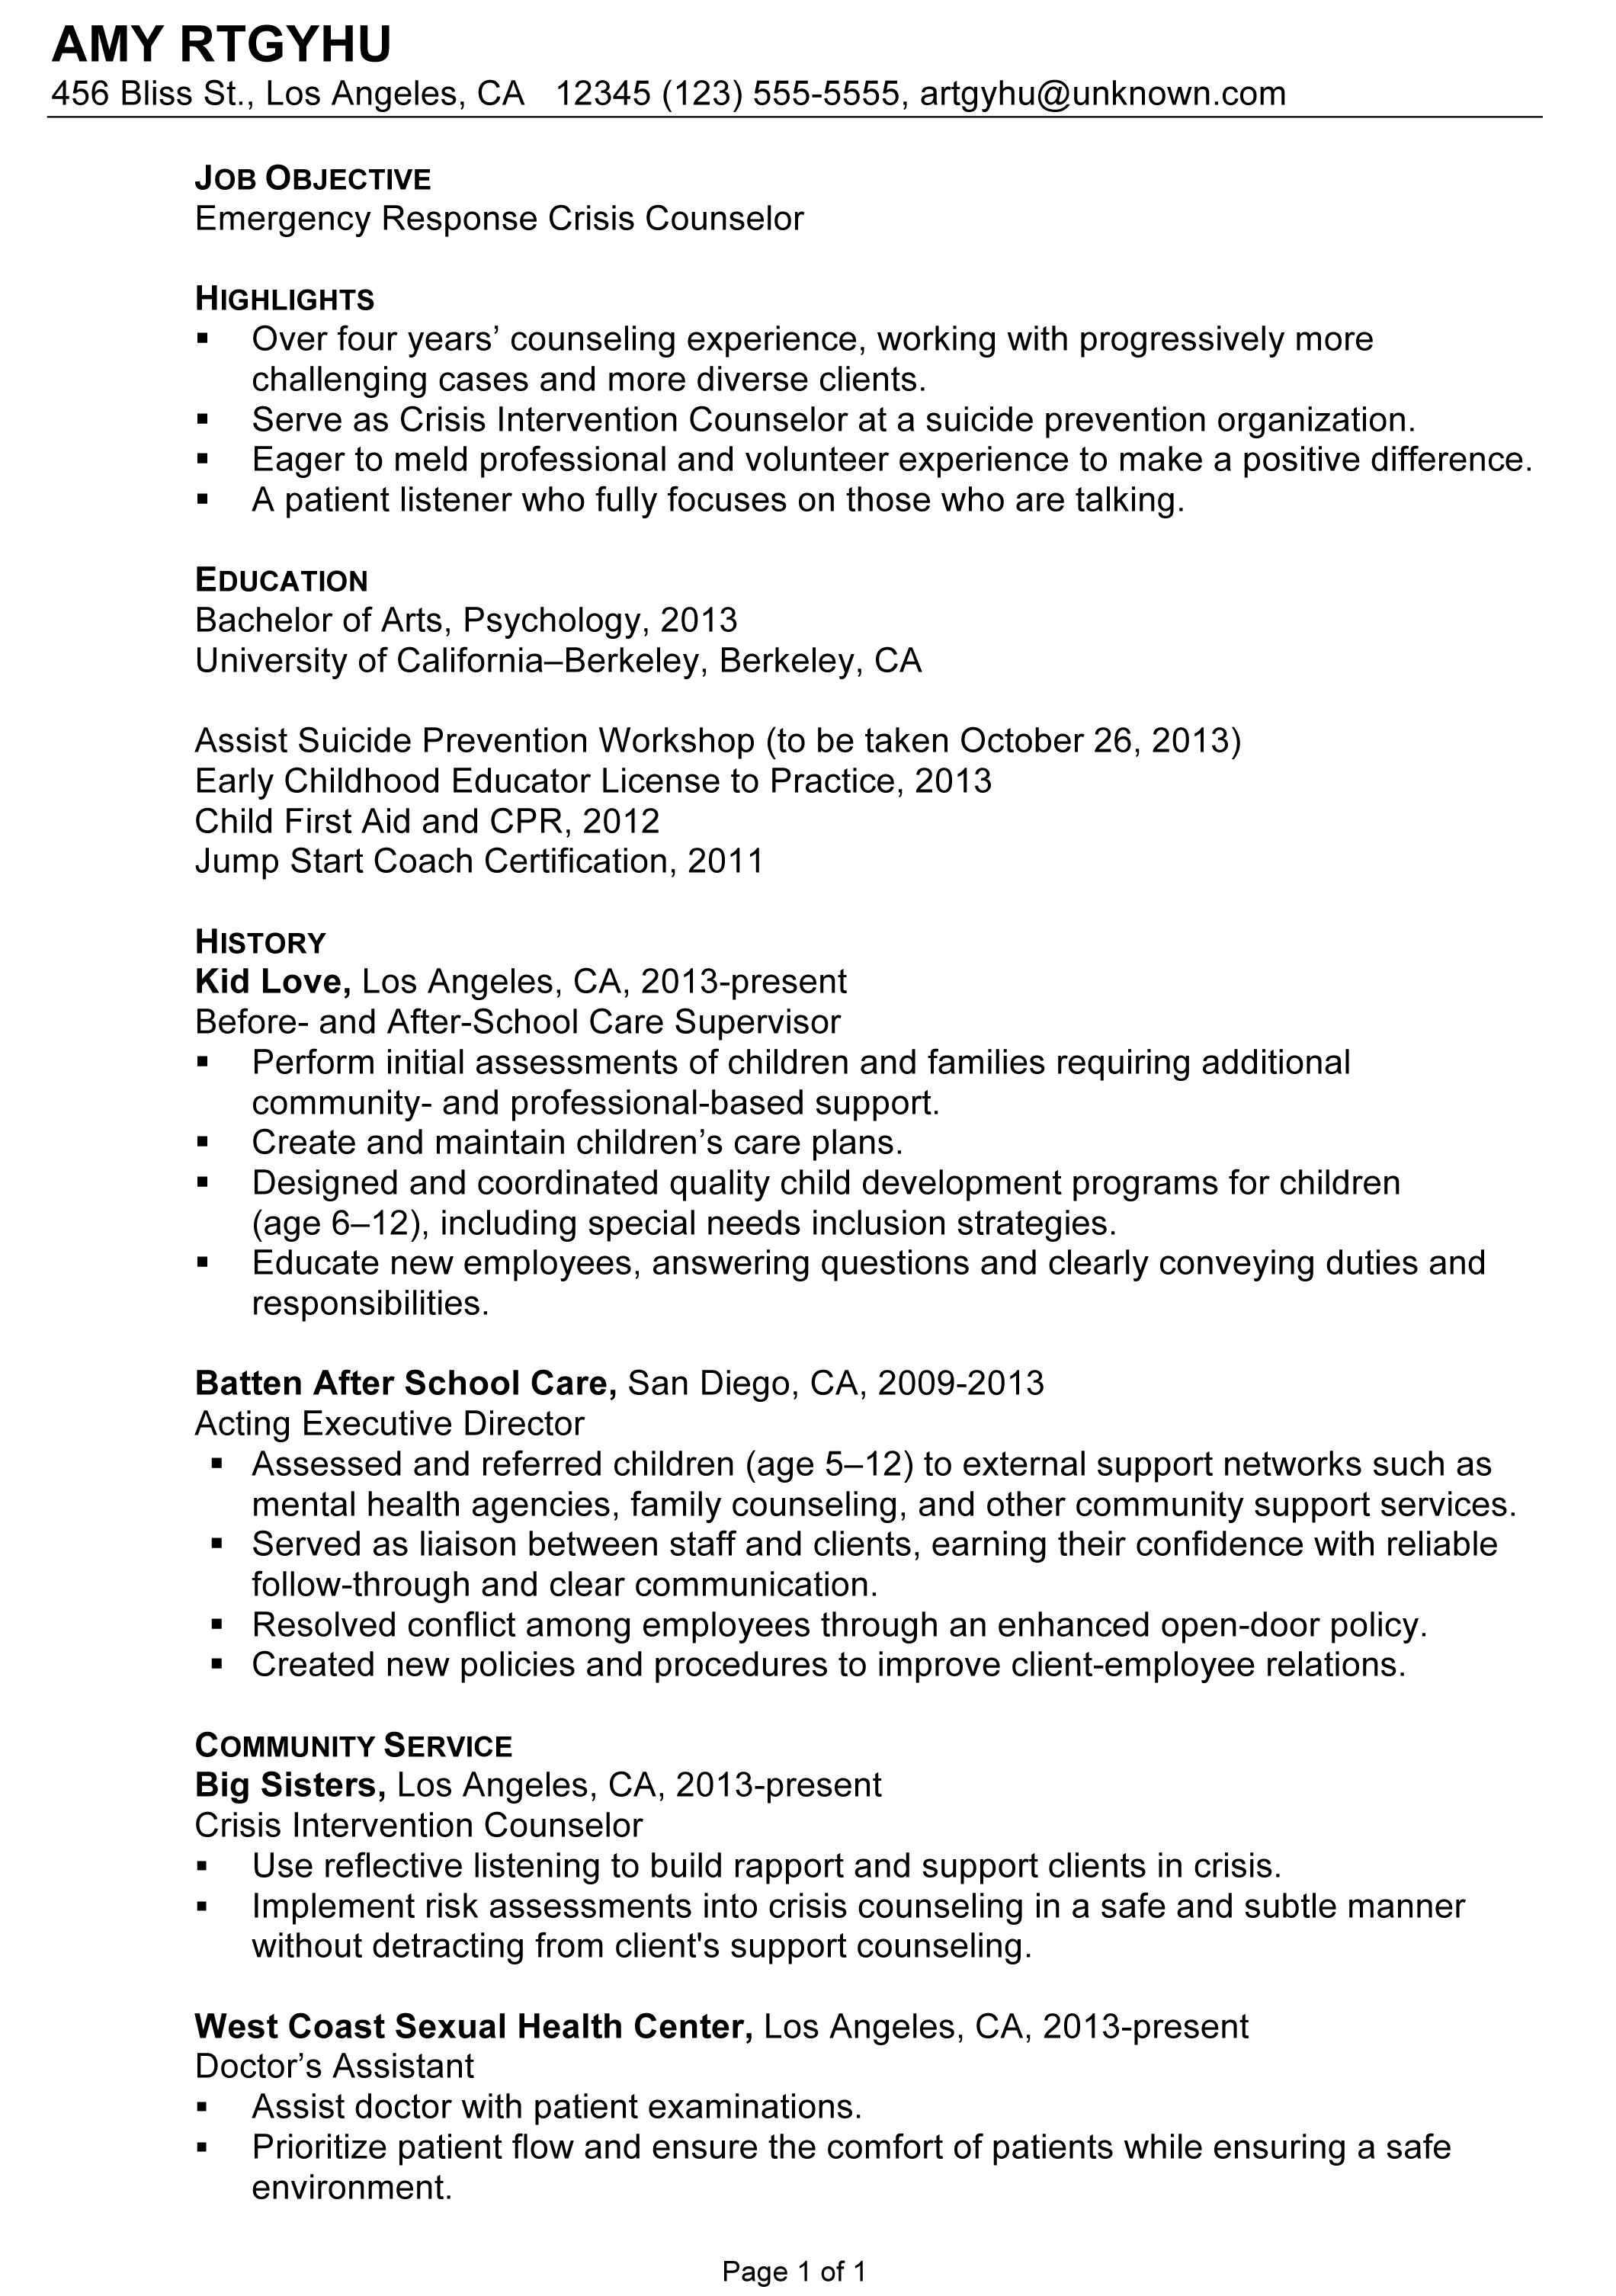 Chronological Resume Sample Emergency Response Crisis Counselor